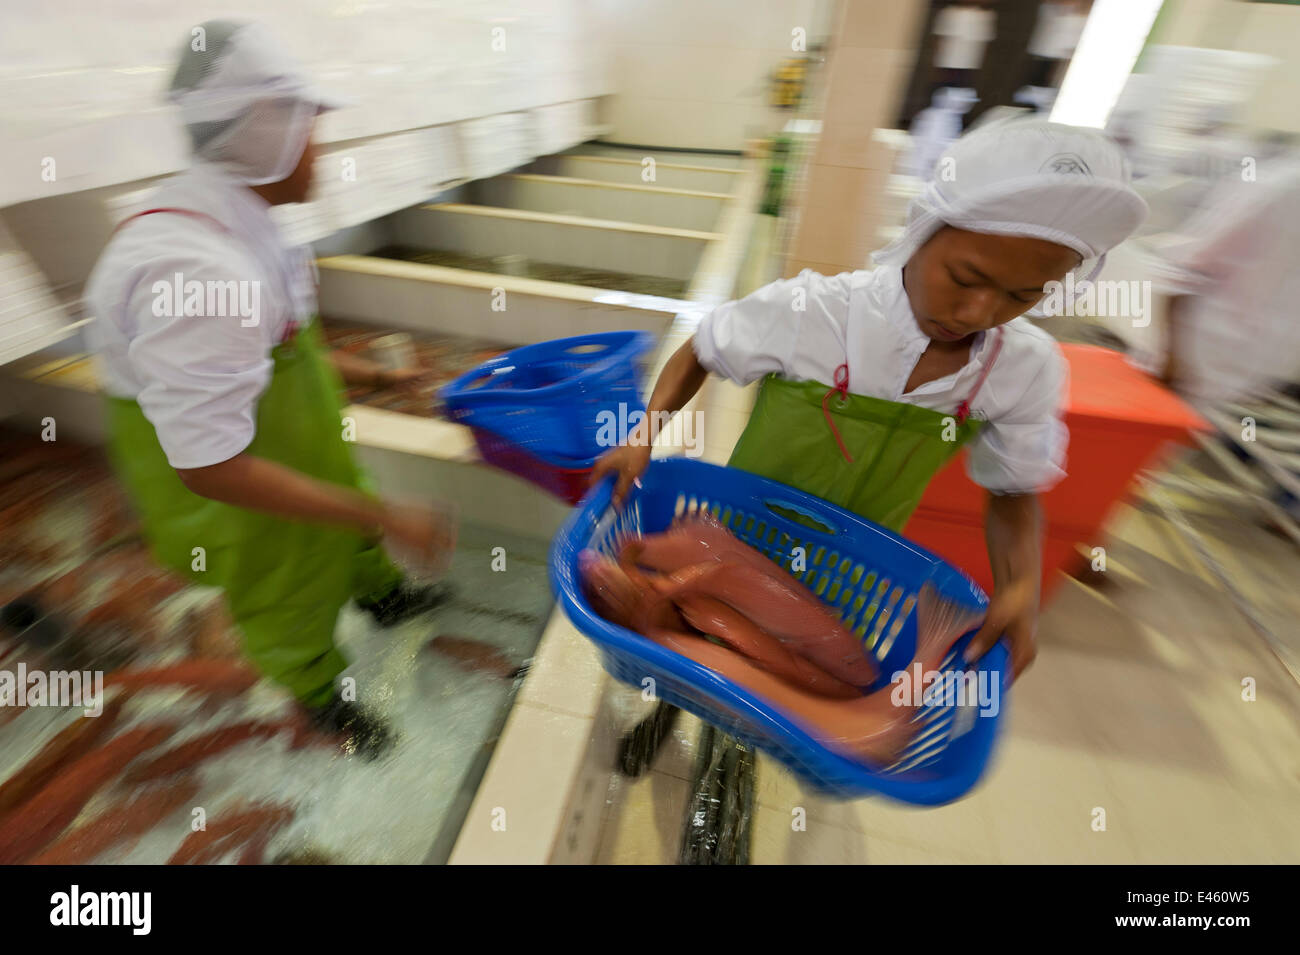 Live reef fish (Groupers) in aquarium ready to be  boxed, aerated and exported to China, Pulau Mas assembly line, - Stock Image